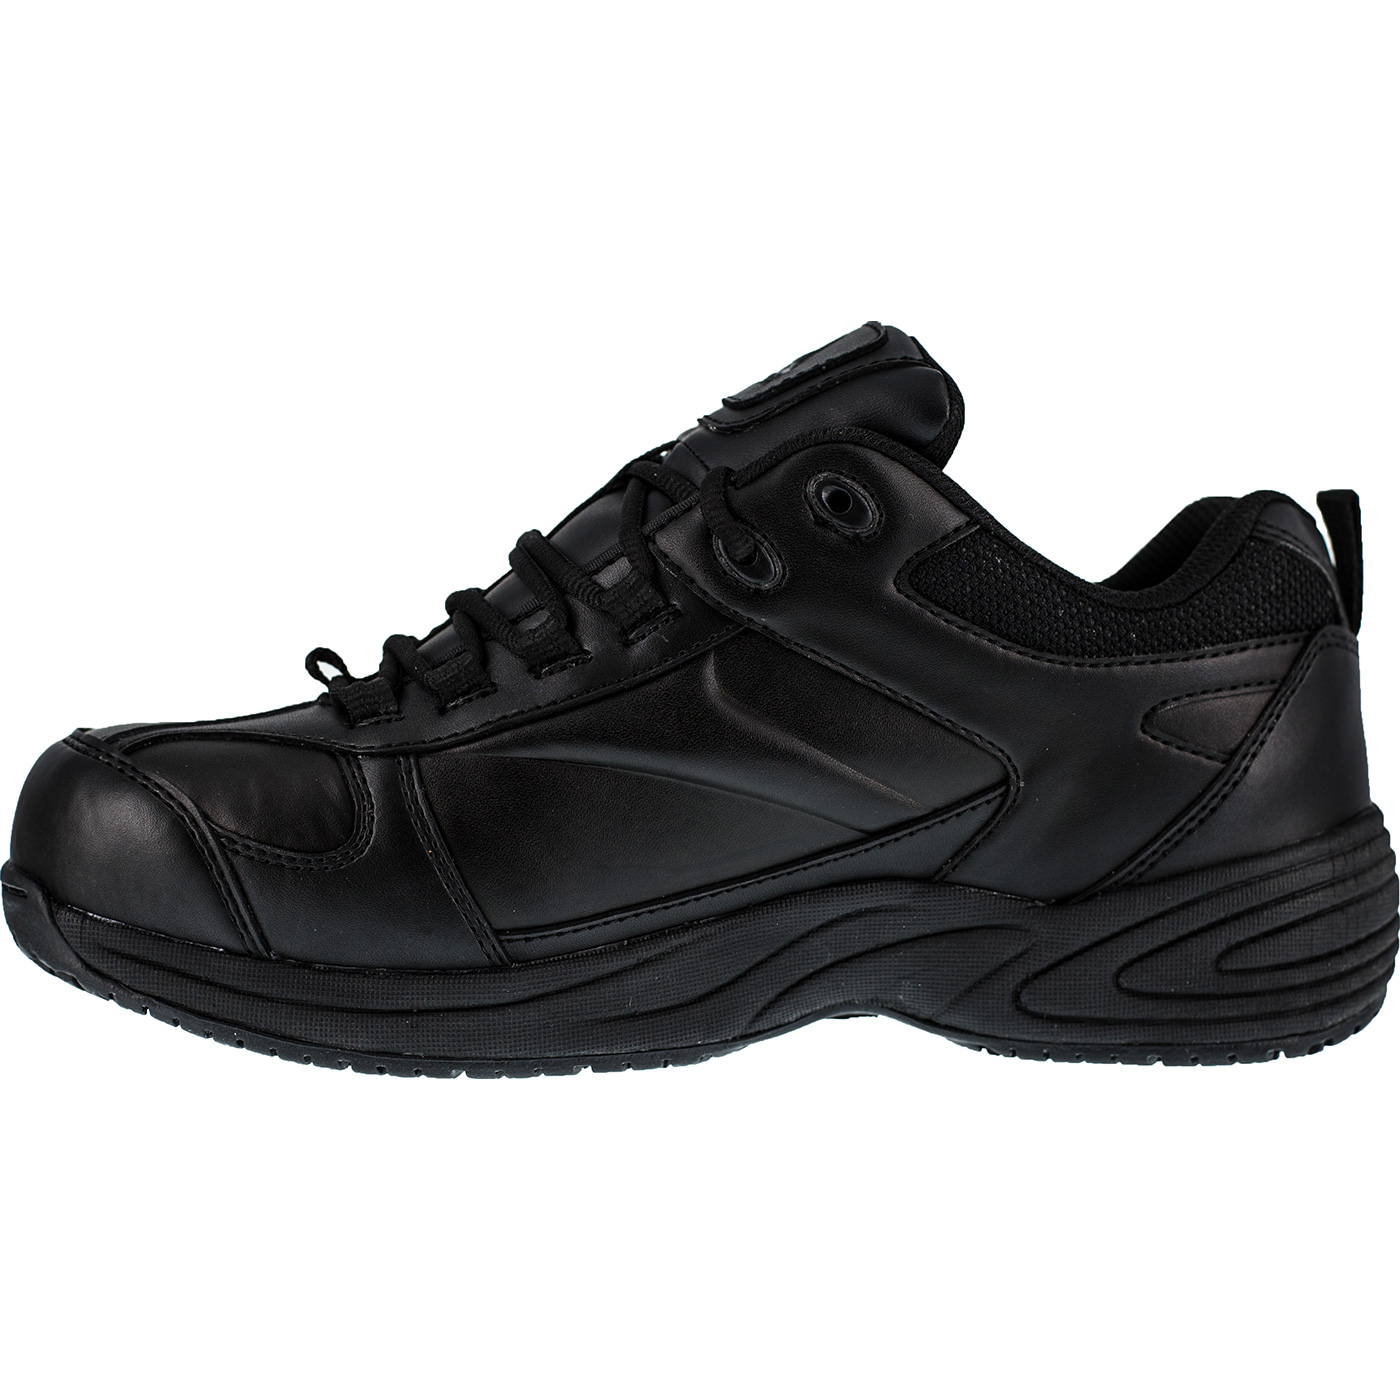 cac0c3c4d6f Black Athletic Reebok Composite Toe Met Guard Work Shoe